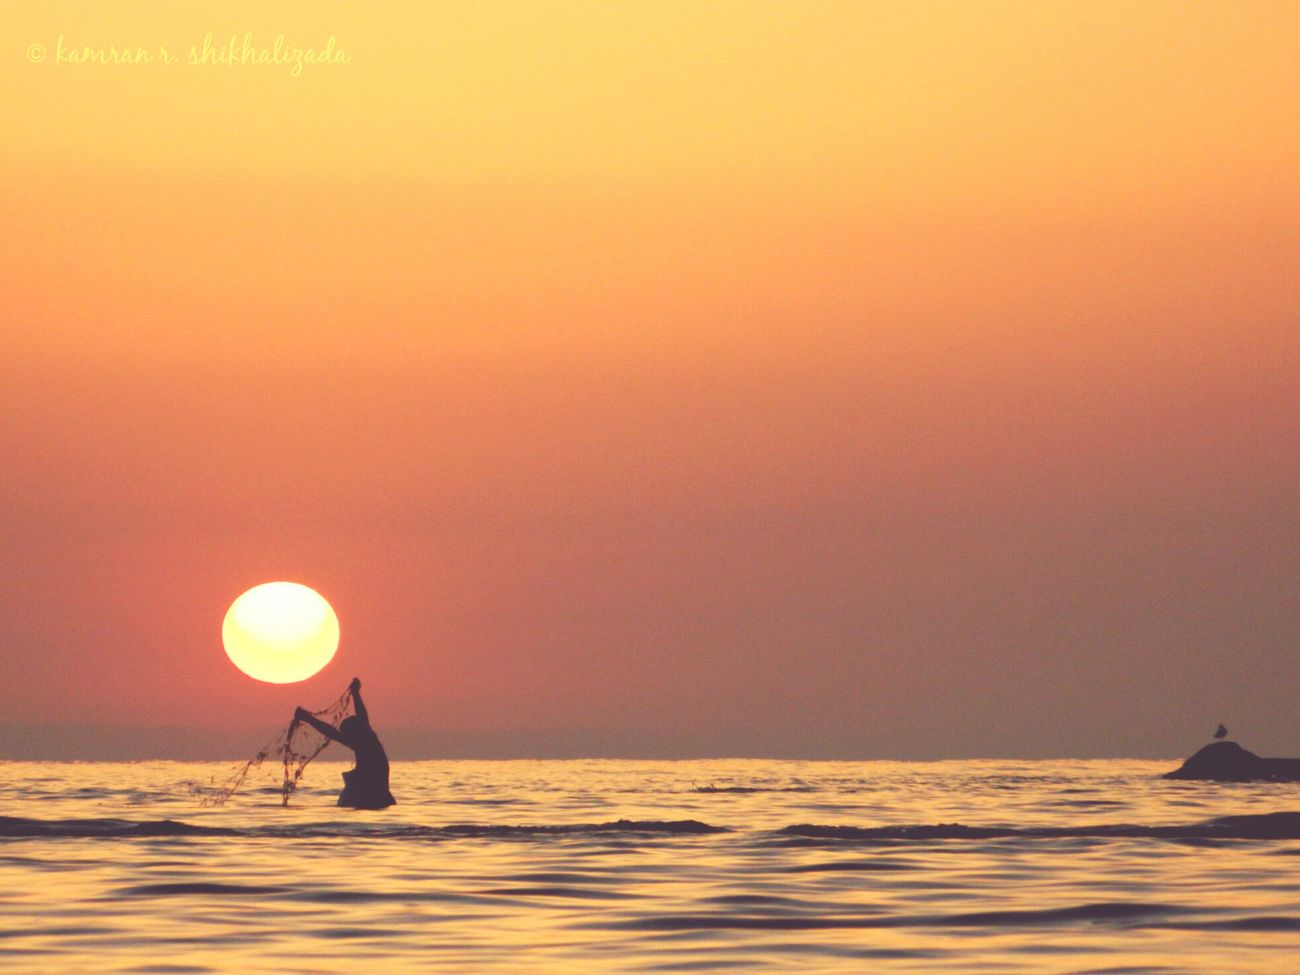 Sumgait Summer Morning Sunrise Sun Fishing Fisherman Azerbaijan Azerbaycan Enjoying Life Optimism Caspiansea Good Morning Kamran Shikhalizada First Eyeem Photo